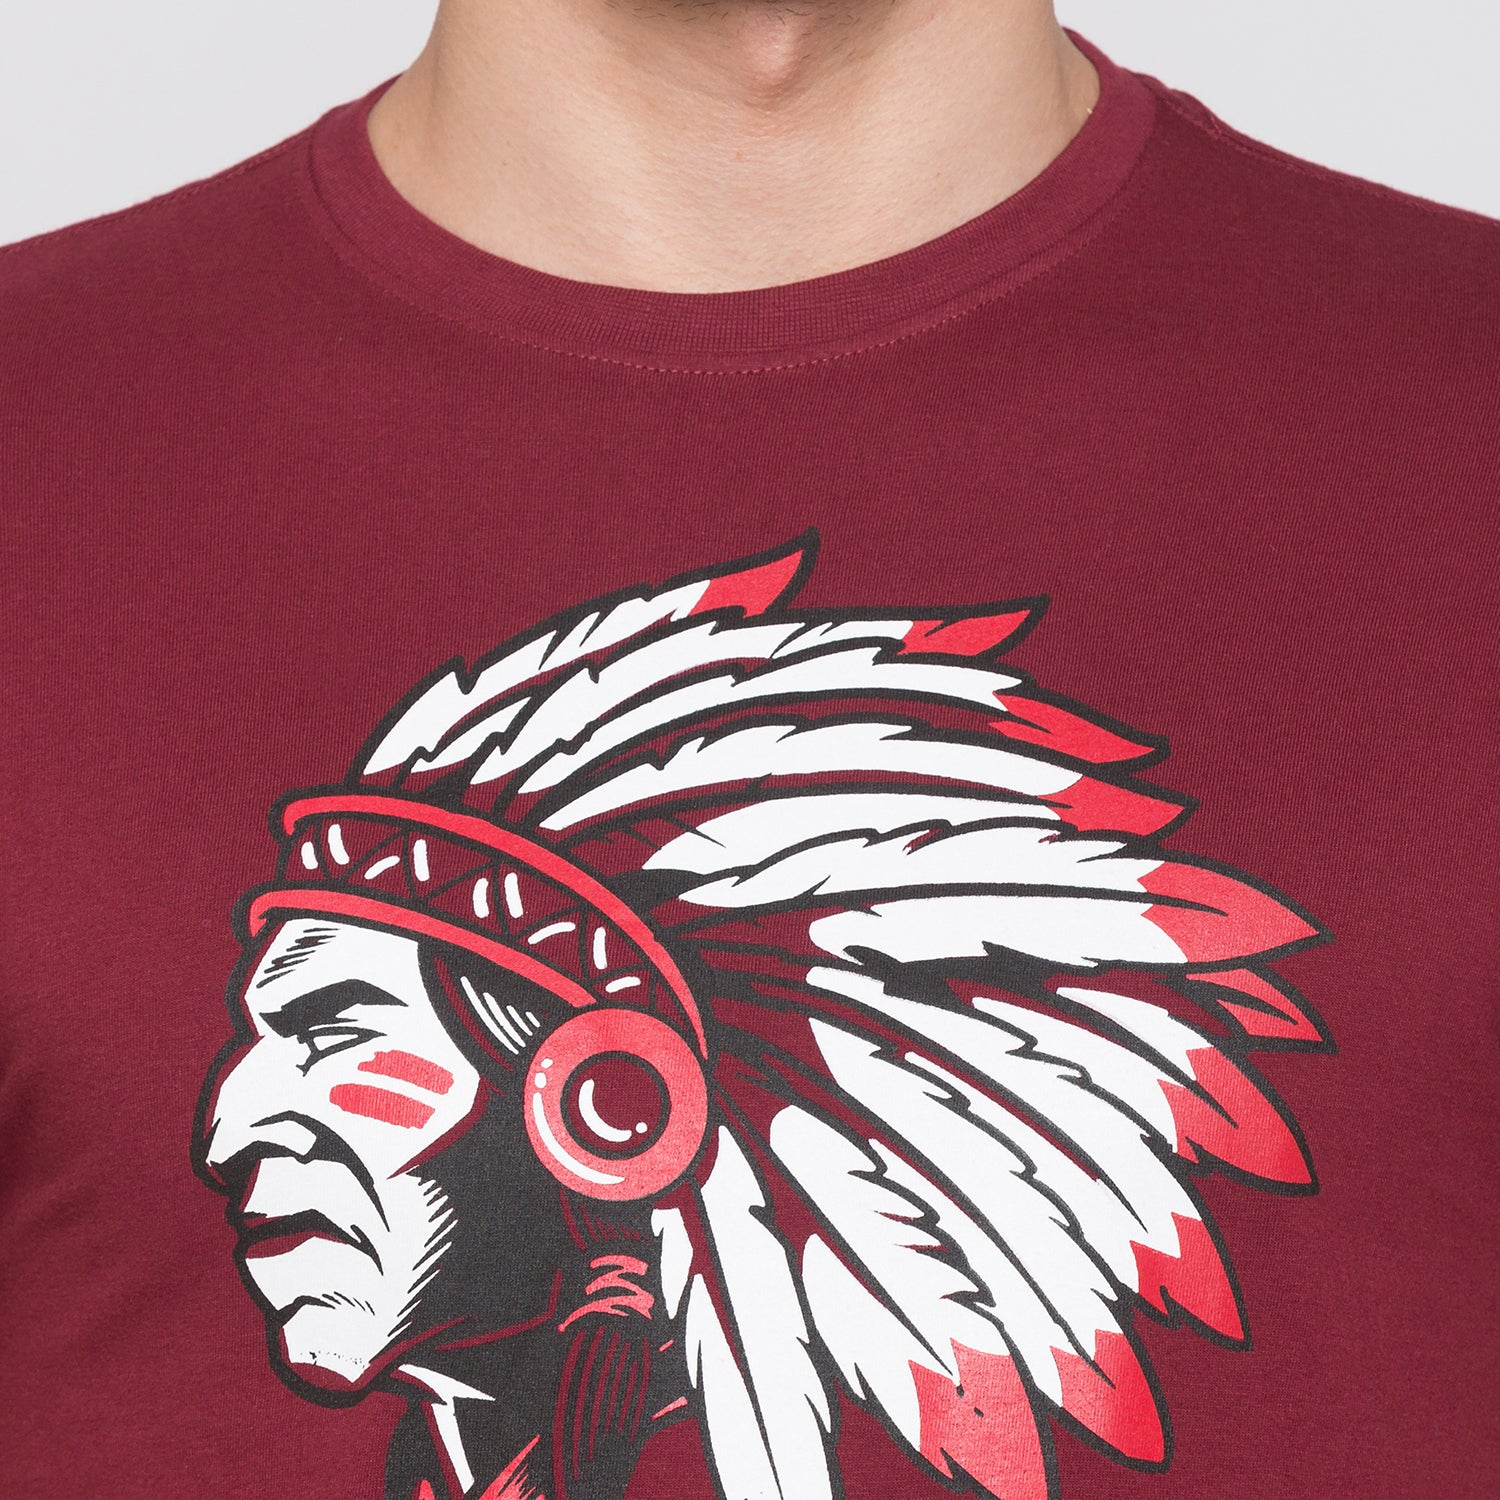 Globus Maroon Graphic T-Shirt5